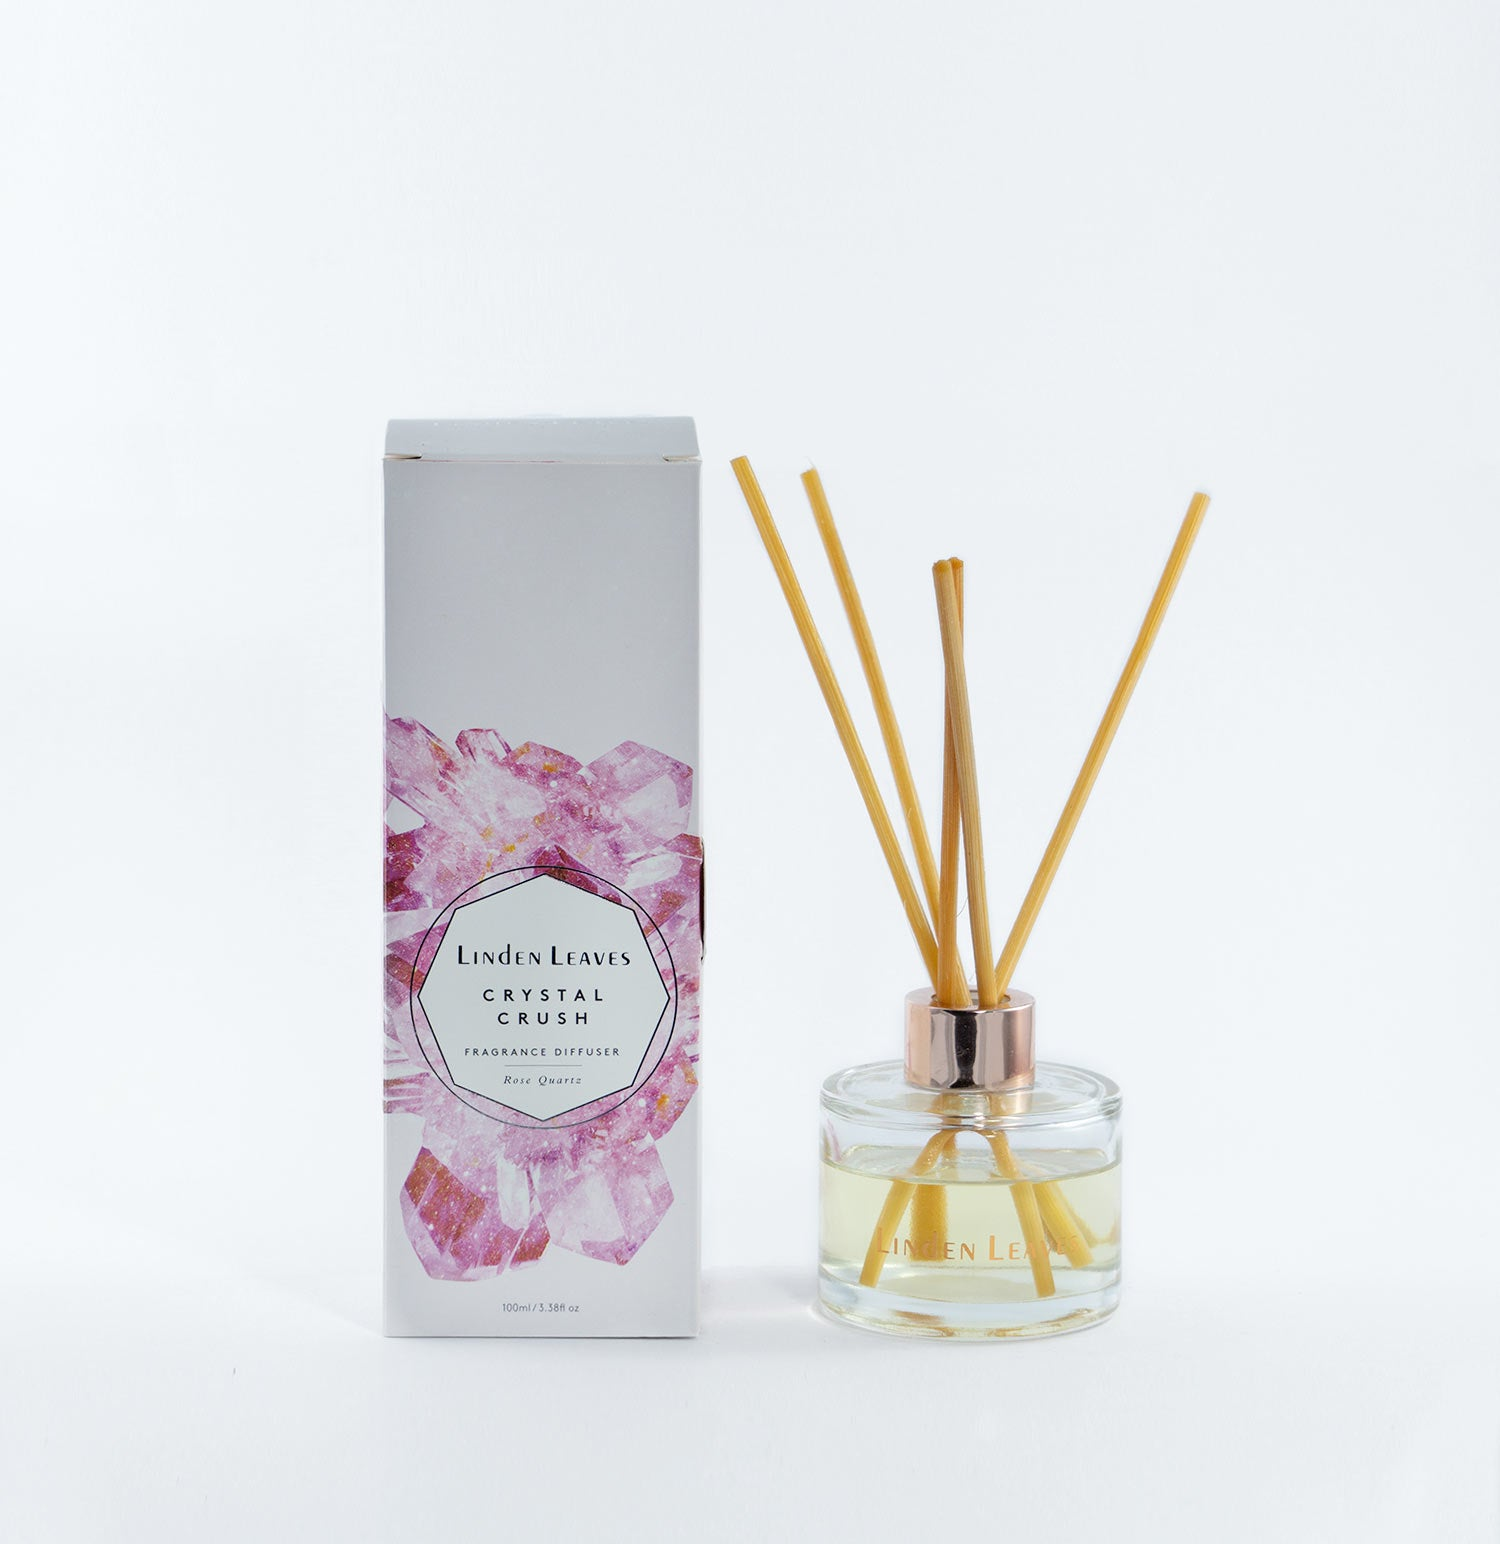 Rose quartz fragrance diffuser